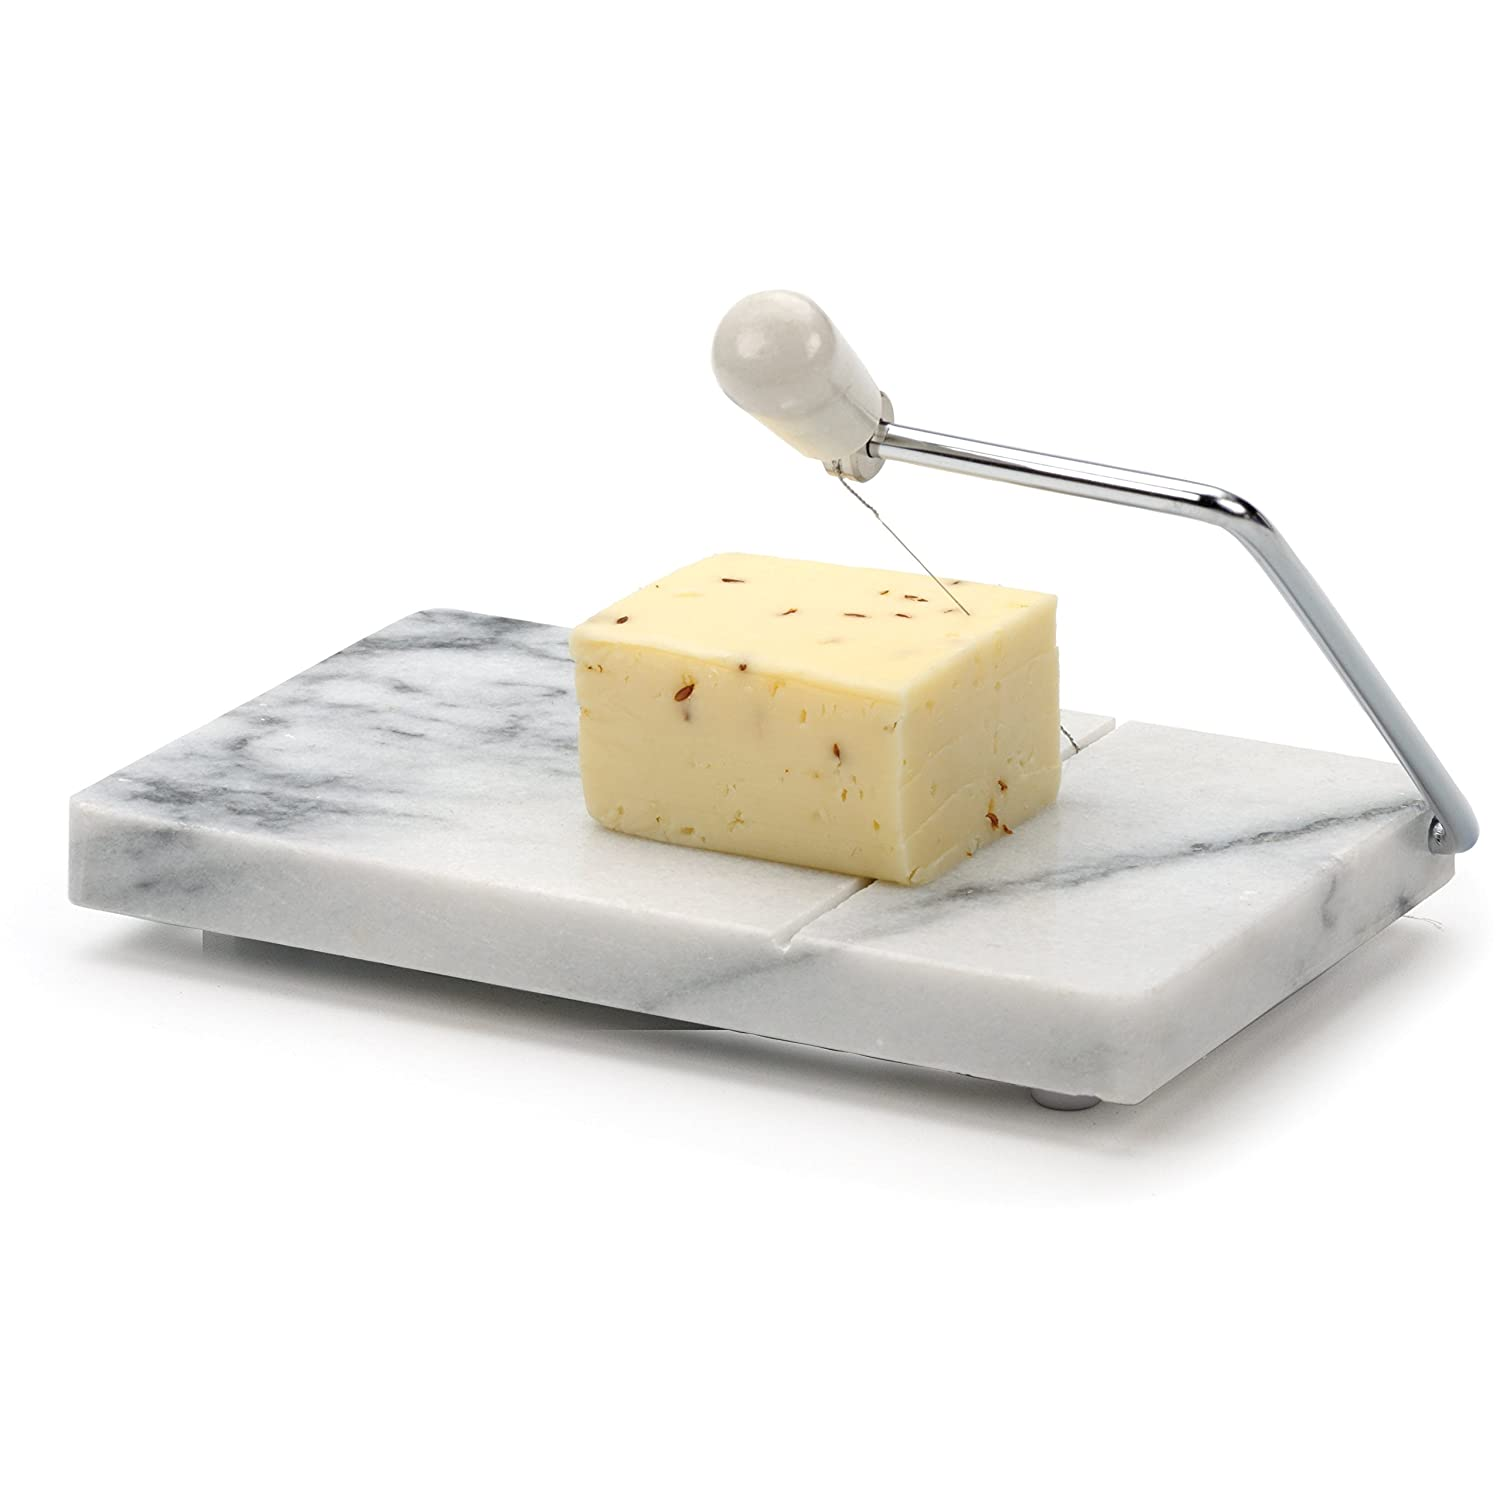 Amazon.com: RSVP Polished 8 x 5 White Marble Board Cheese Slicer ...